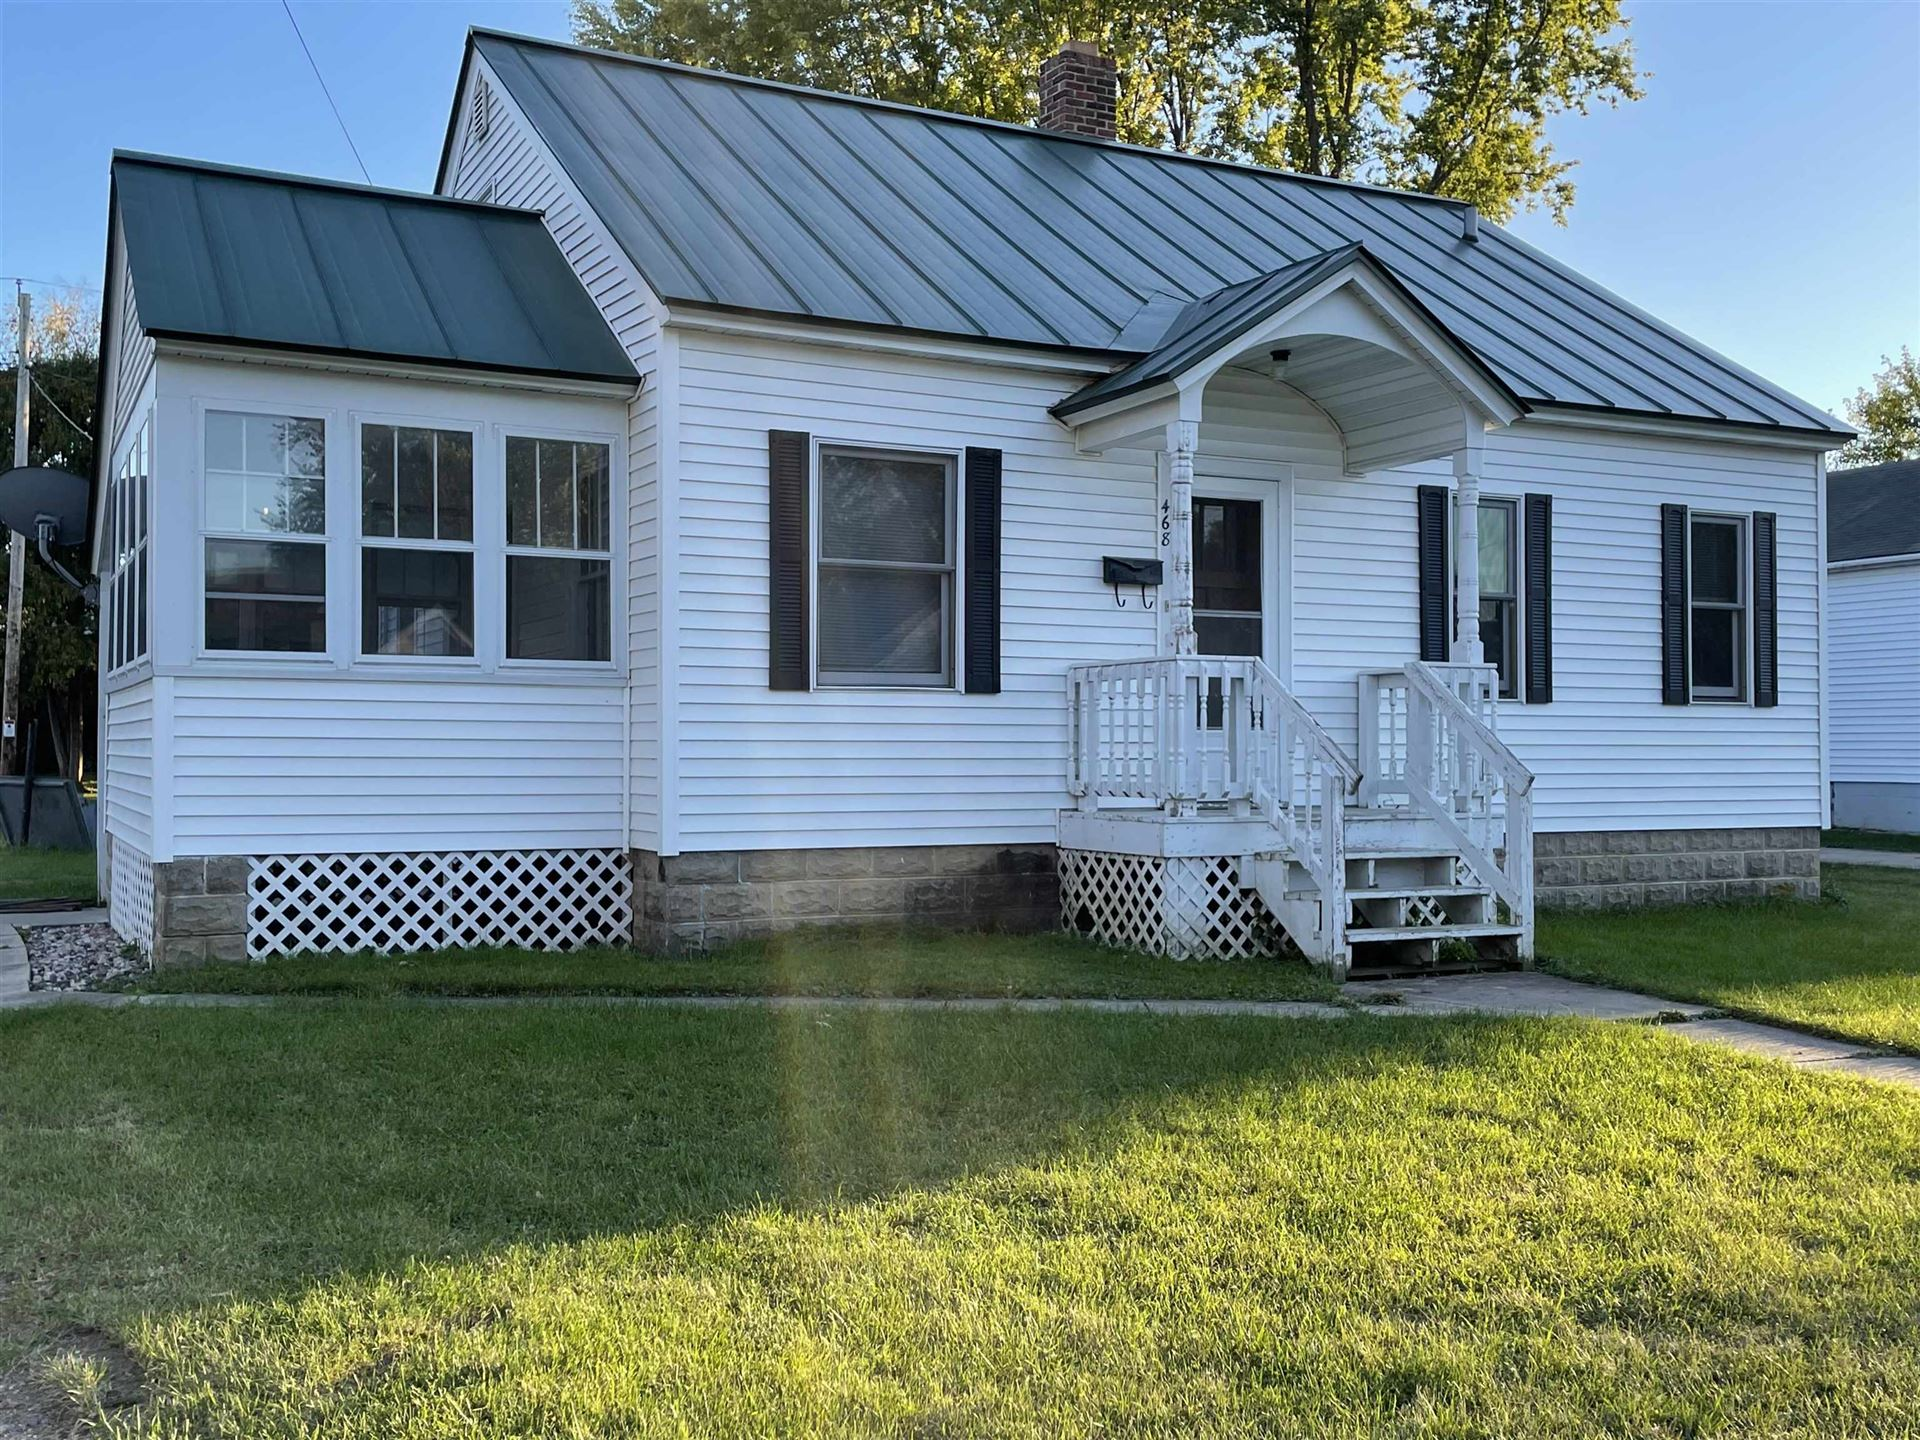 468 West Ave, Mauston, WI 53948 - #: 1921248